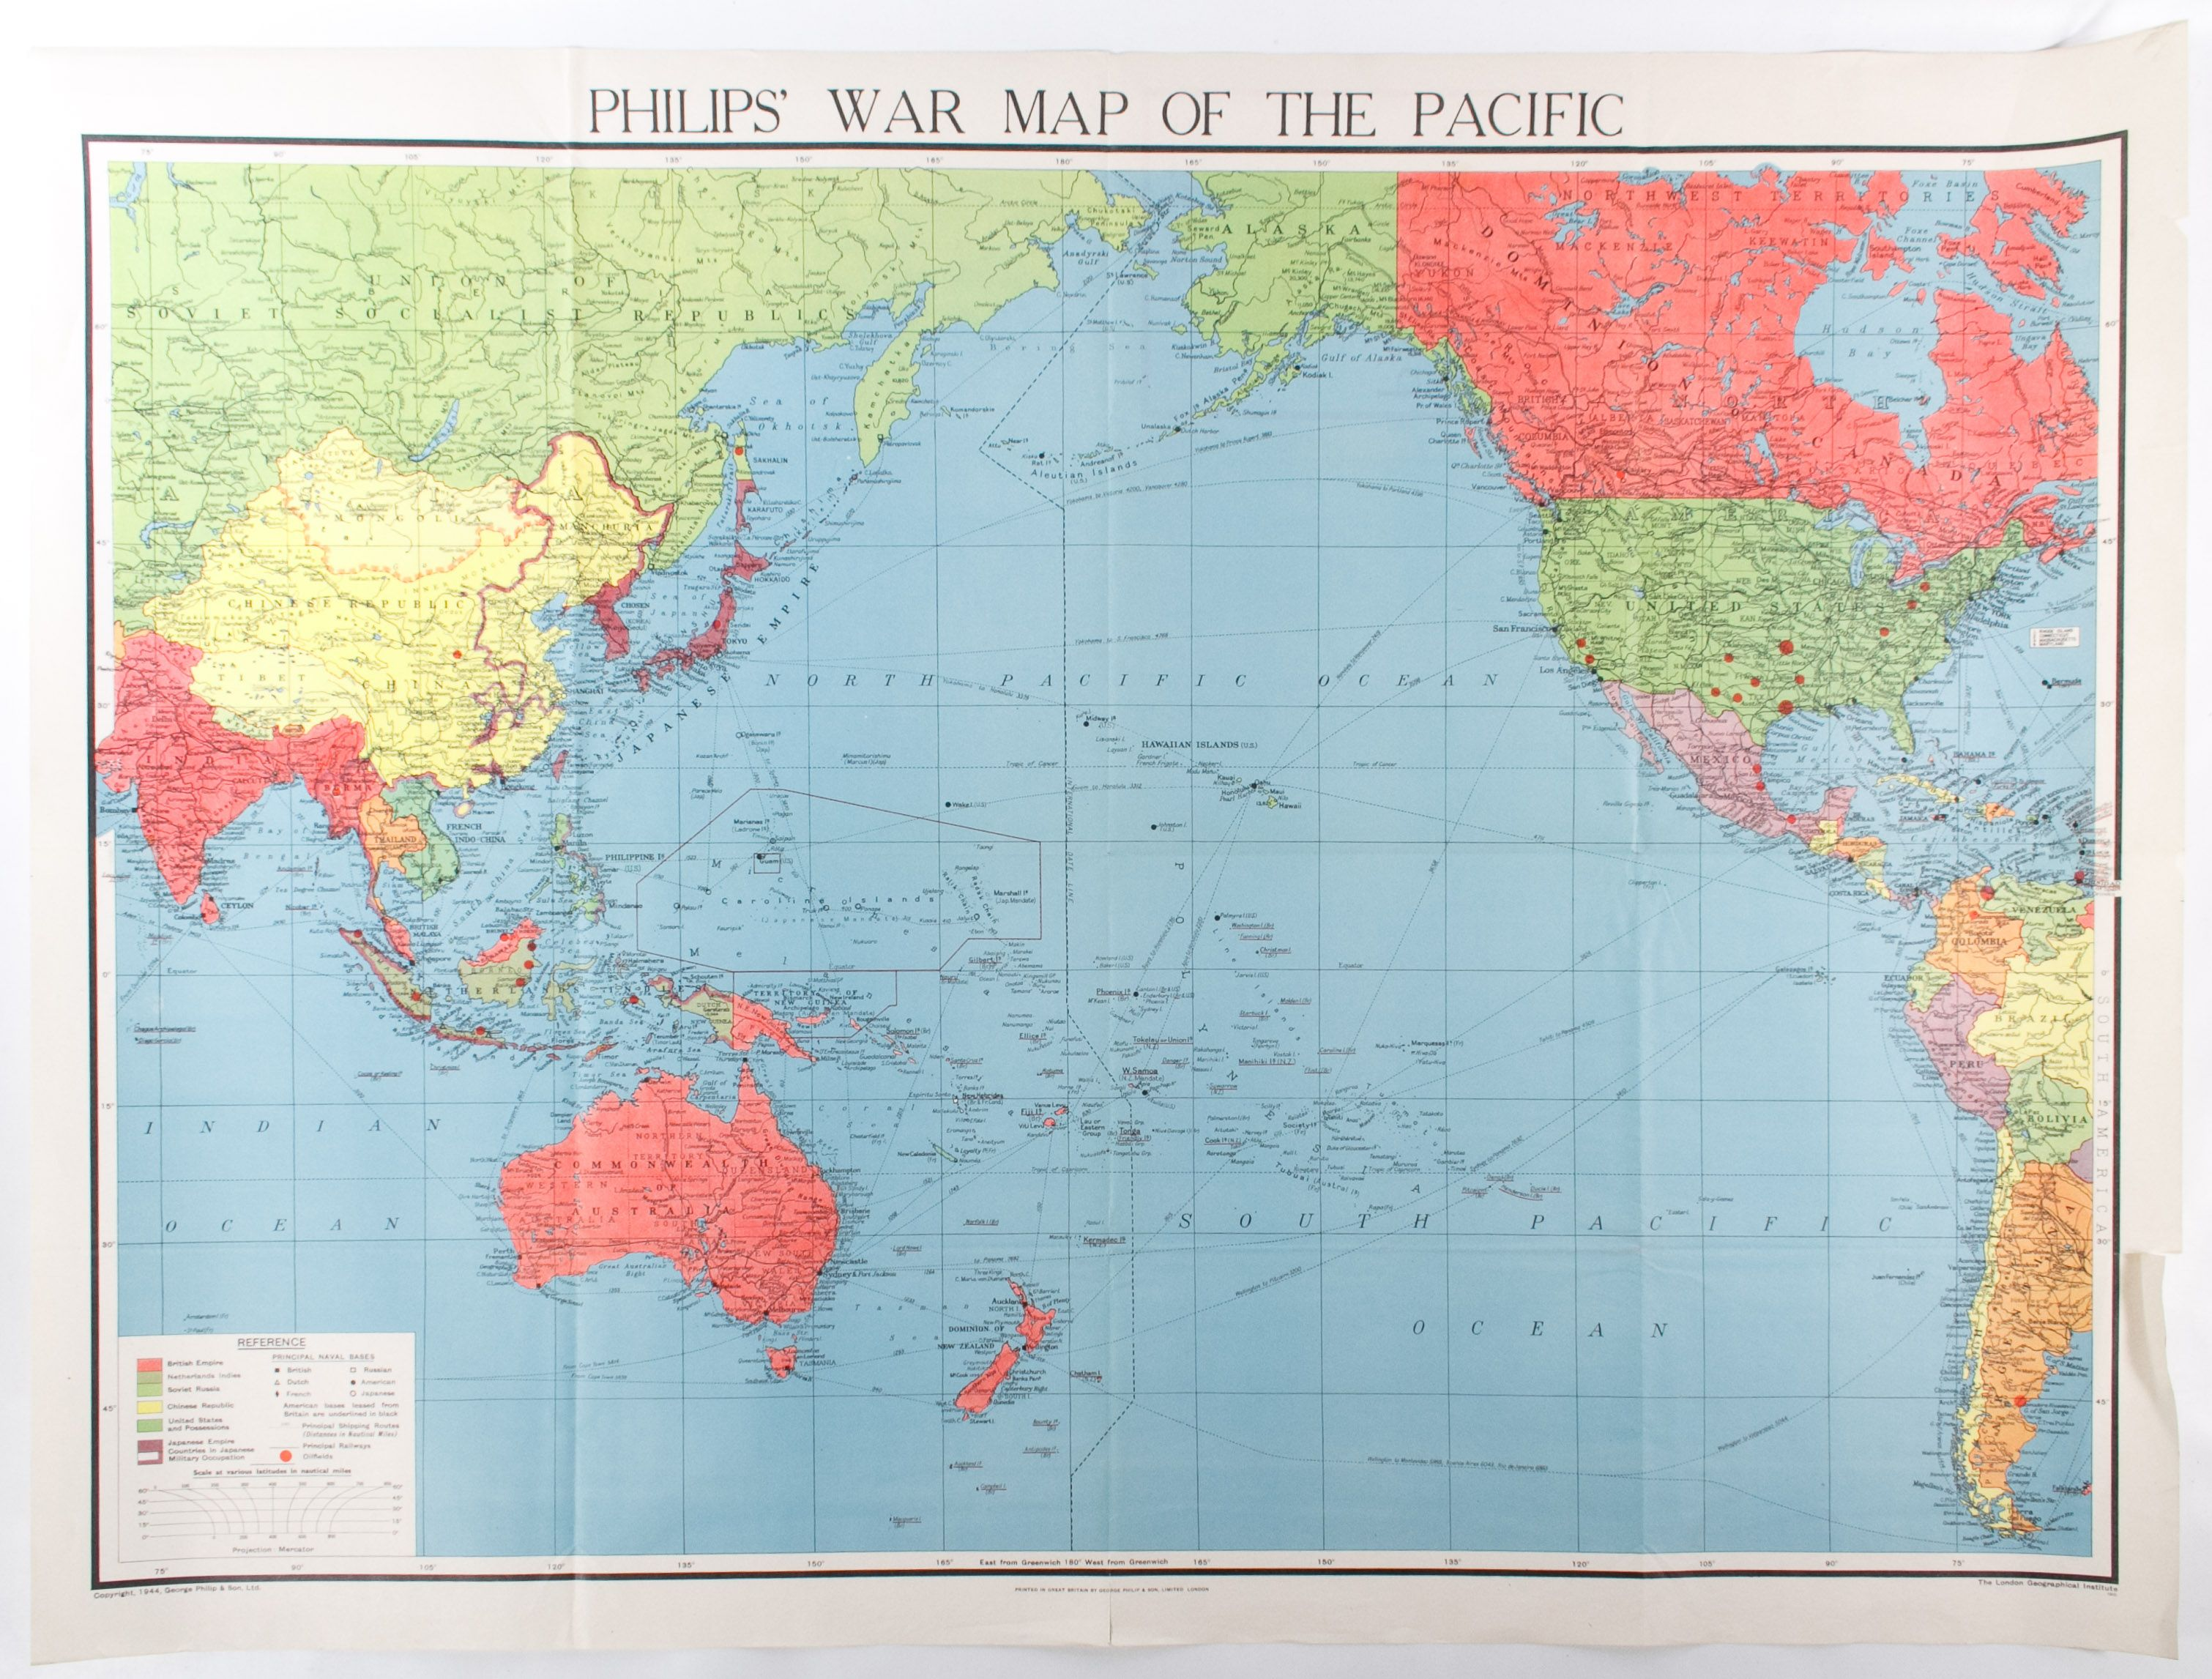 Lot 701 world war ii era american printed maps three maps lot world war ii era american printed maps three maps including a 1946 adsec in action mailer poster with the soldiers notes en verso a 1939 japanese gumiabroncs Images